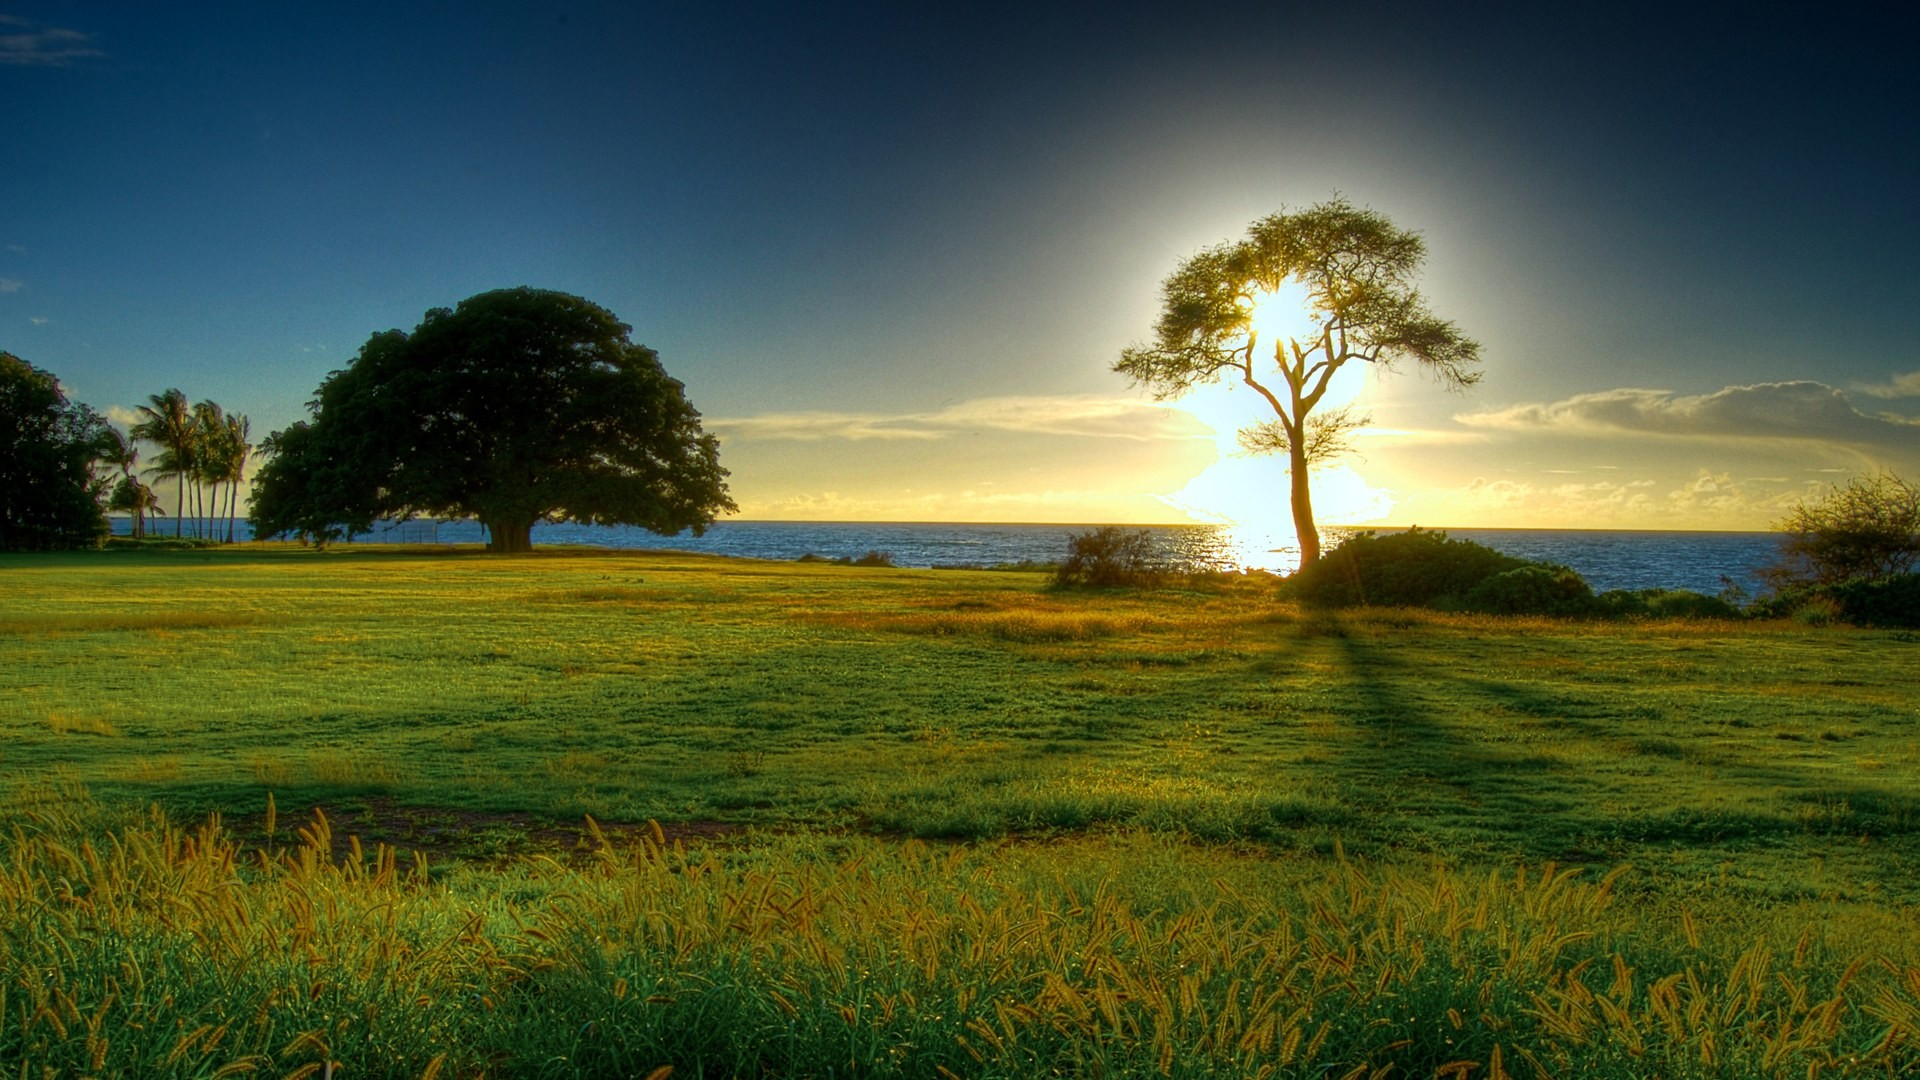 Hd Nature Wallpapers 71 Images